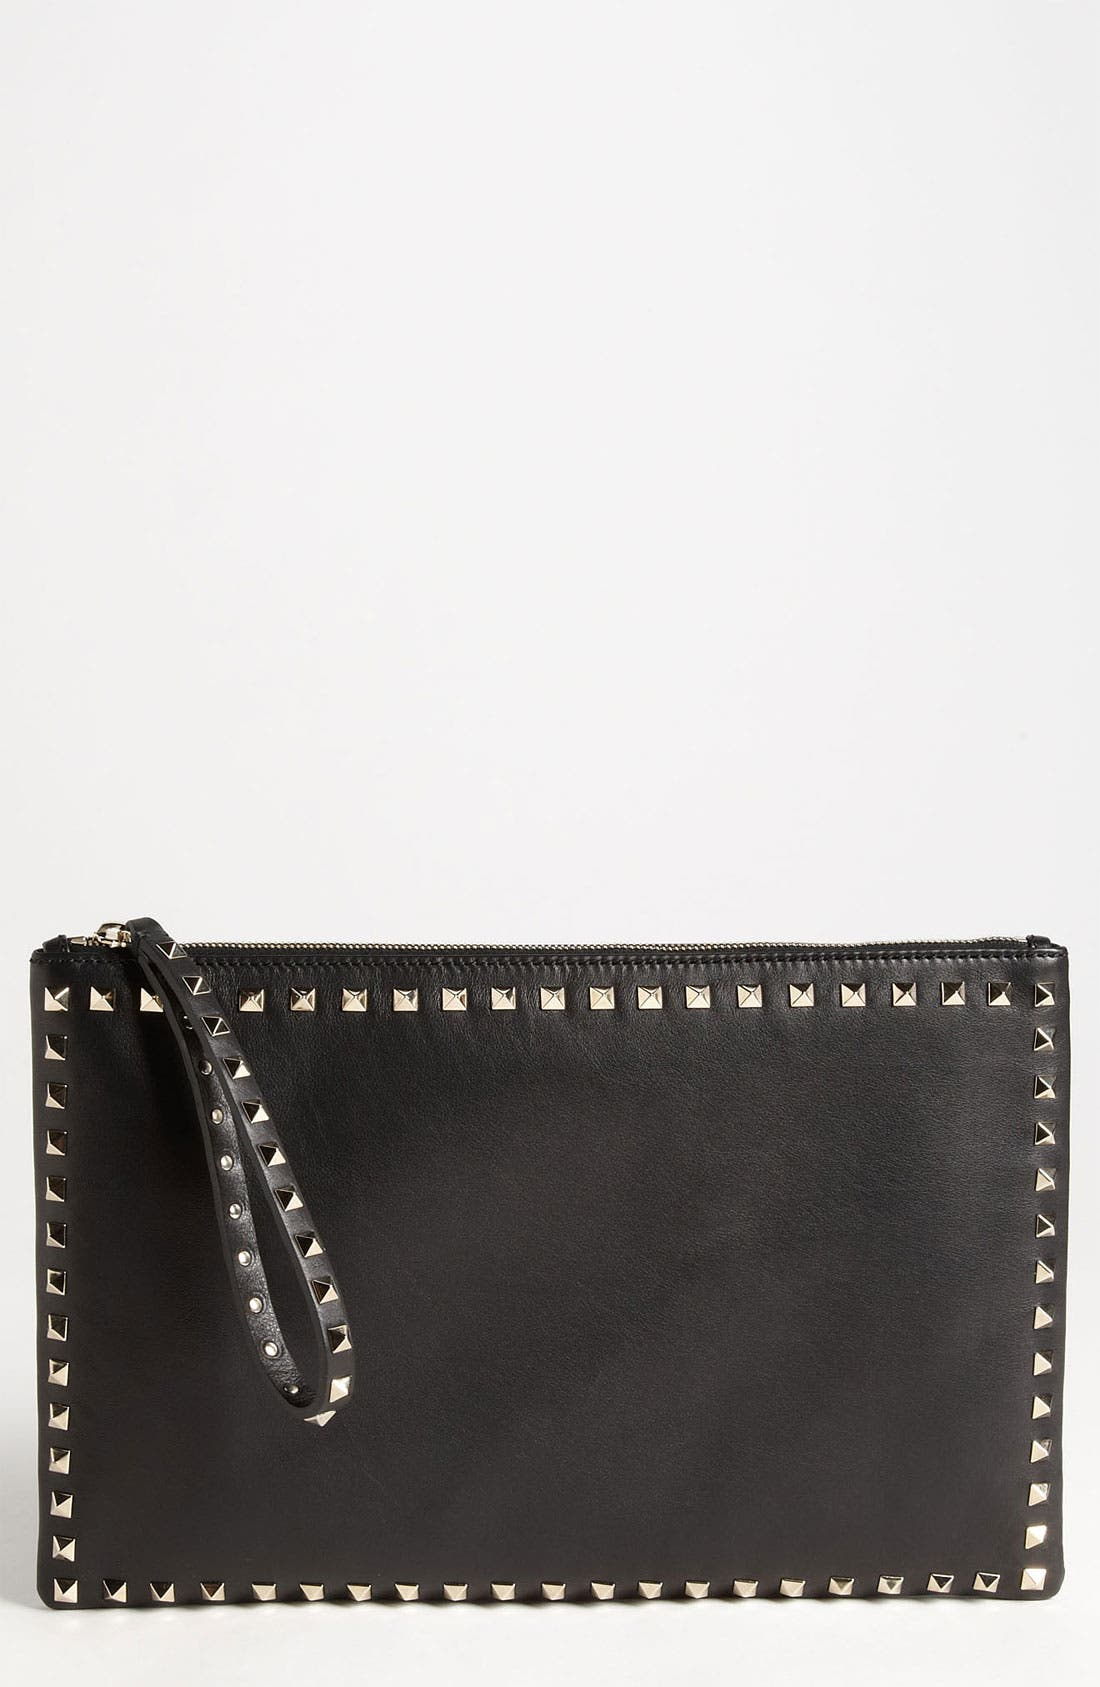 Alternate Image 1 Selected - Valentino 'Rockstud - Flat' Leather Clutch